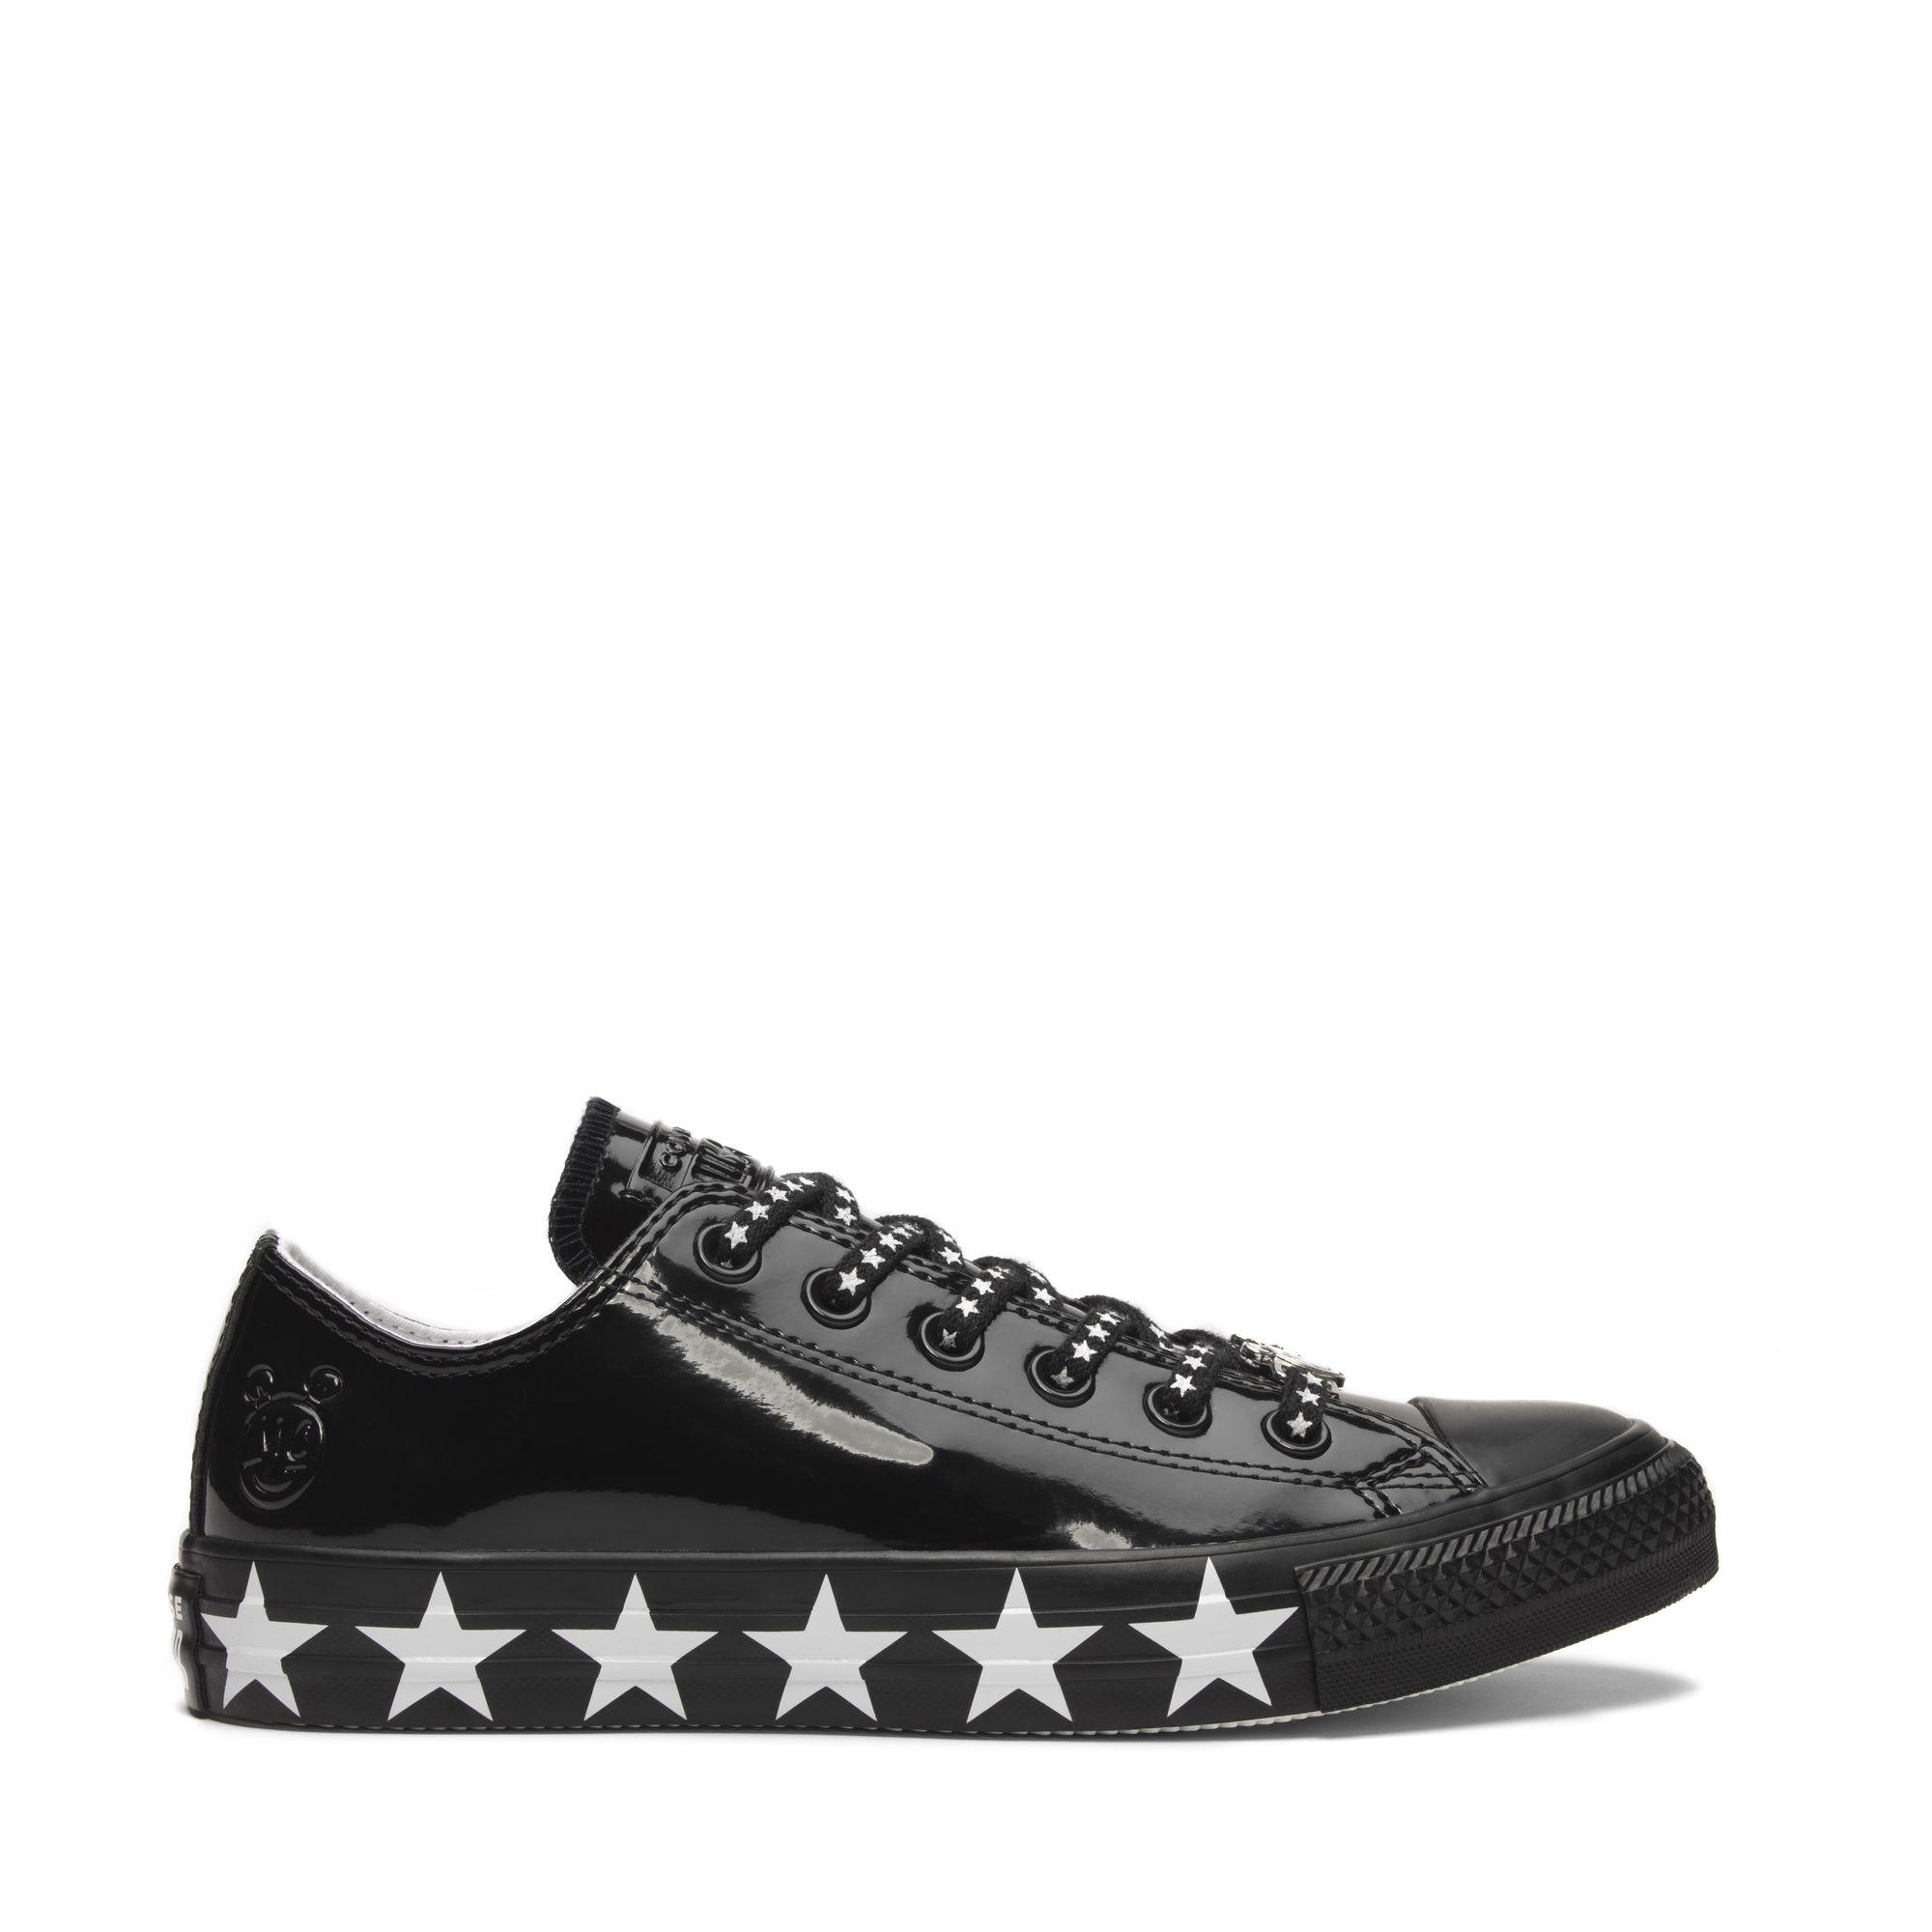 69c8295a2bc0  SALE  CONVERSE MILEY CYRUS CHUCK TAYLOR ALL STAR OX - BLACK WHITE